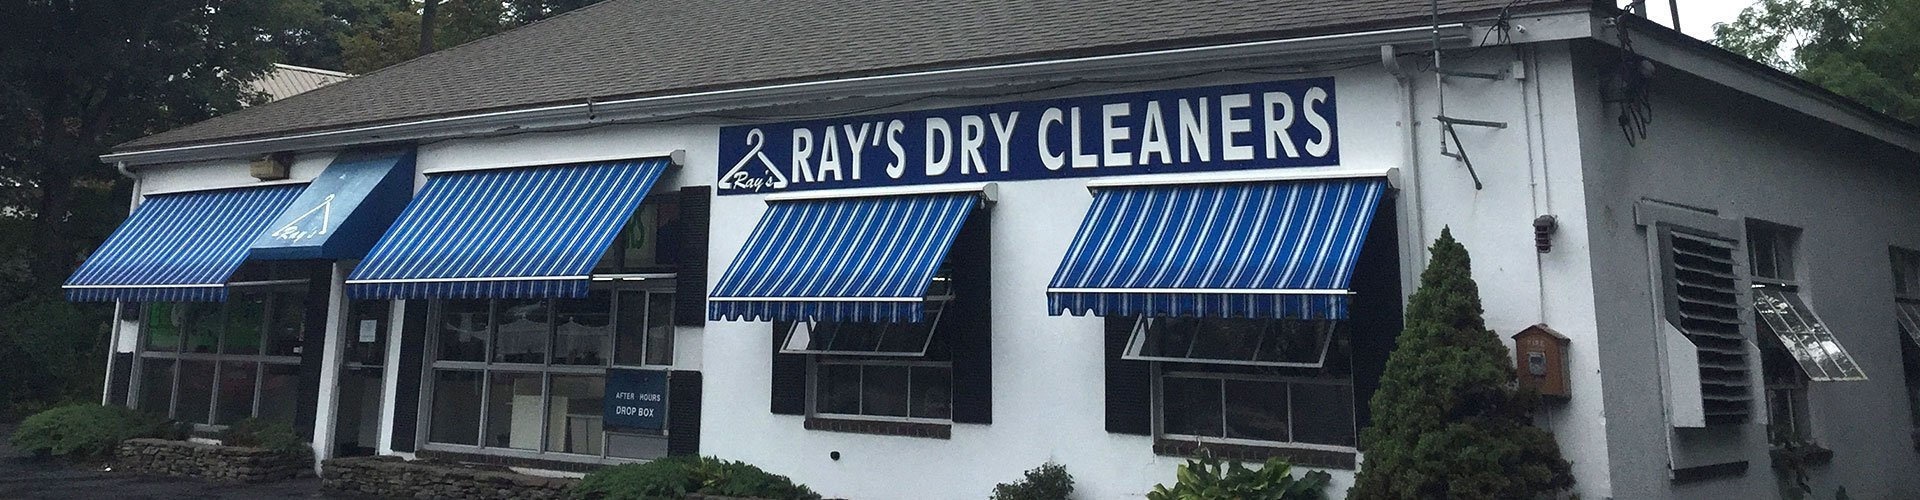 Ray's Dry Cleaners Store